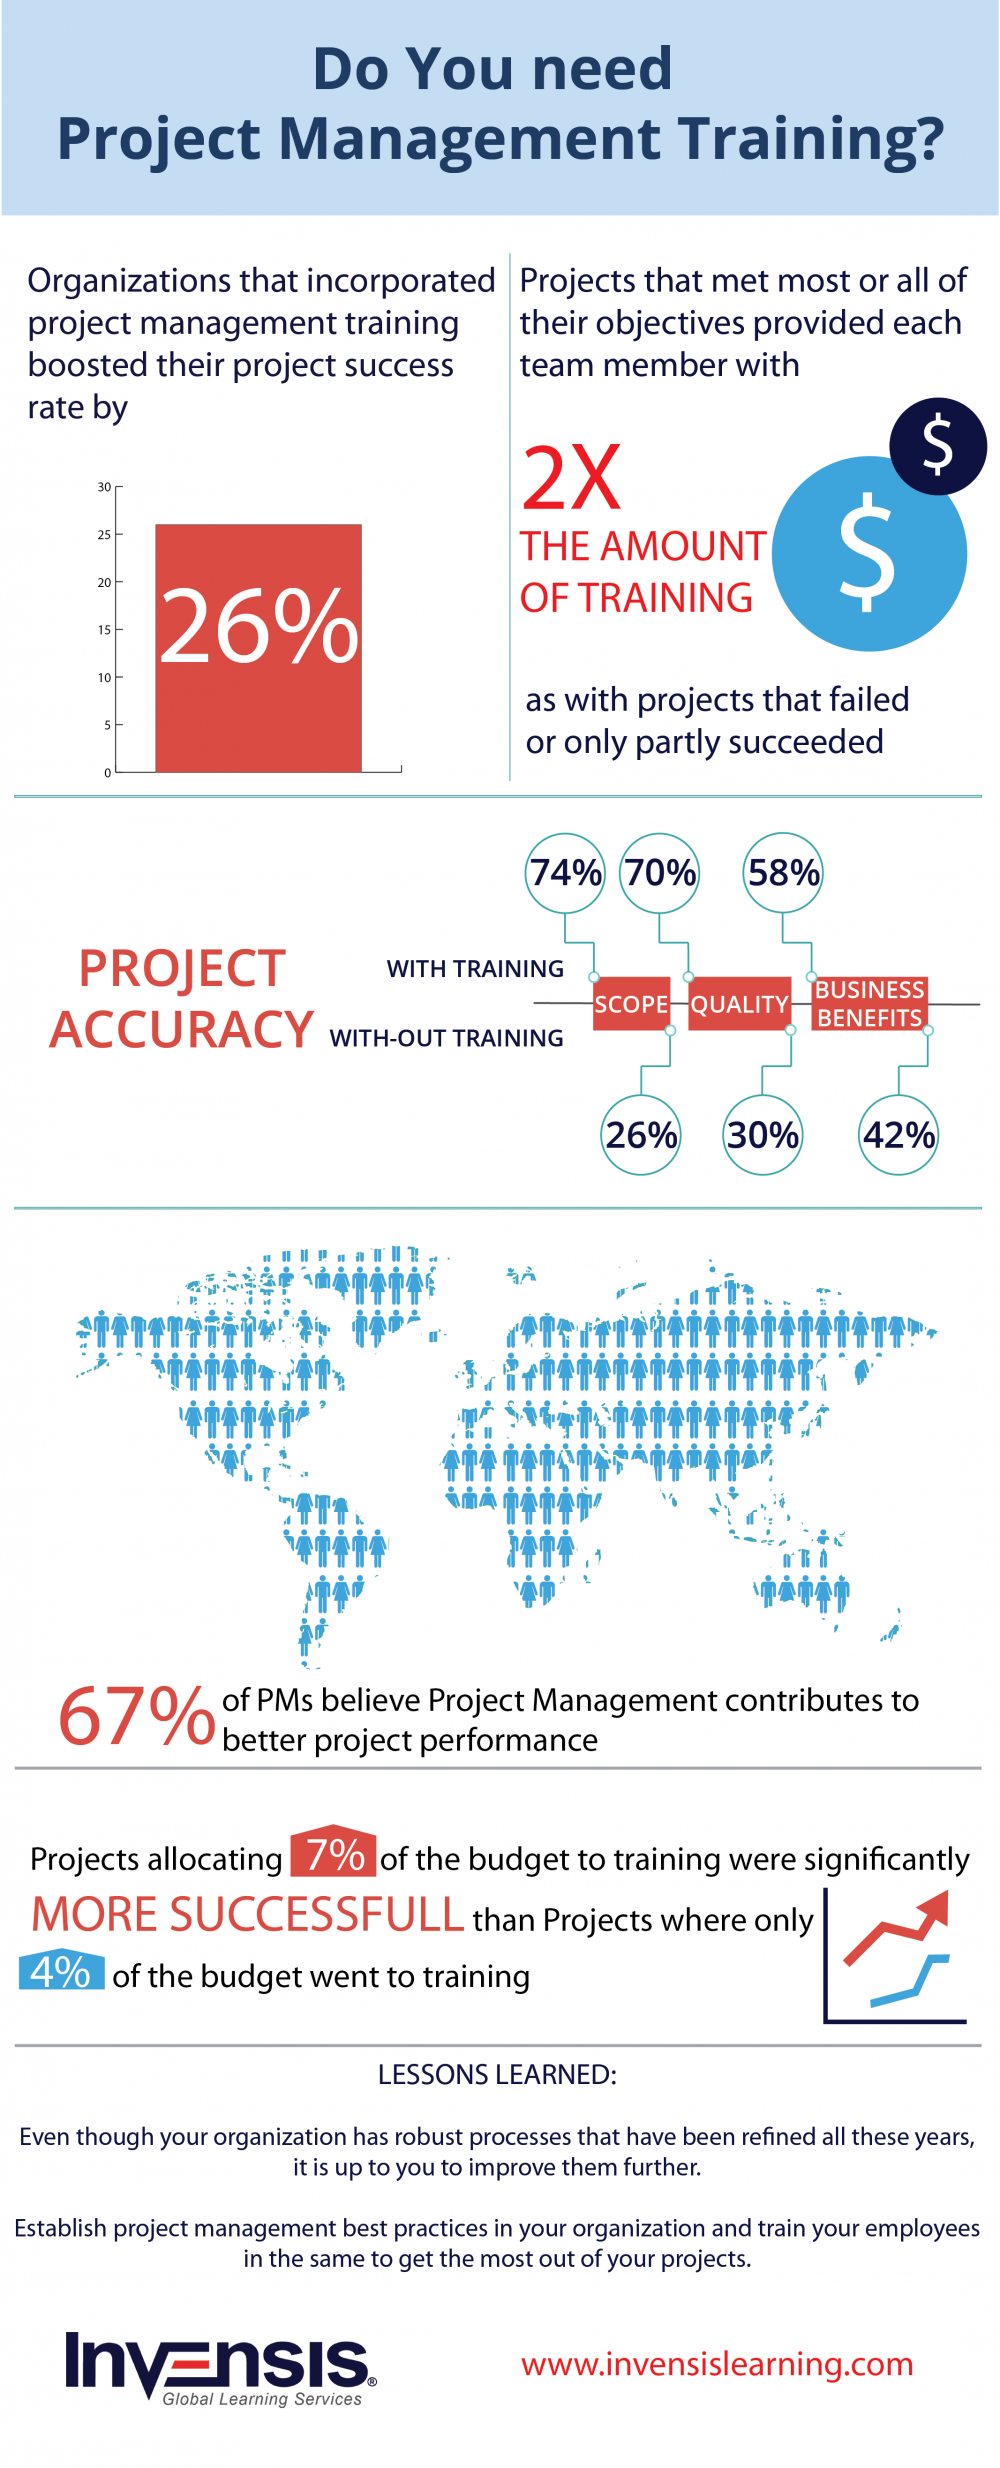 The importance of project management training infographic an infographic depicting why you need project management certification training understand how organizations that incorporated project management training 1betcityfo Image collections